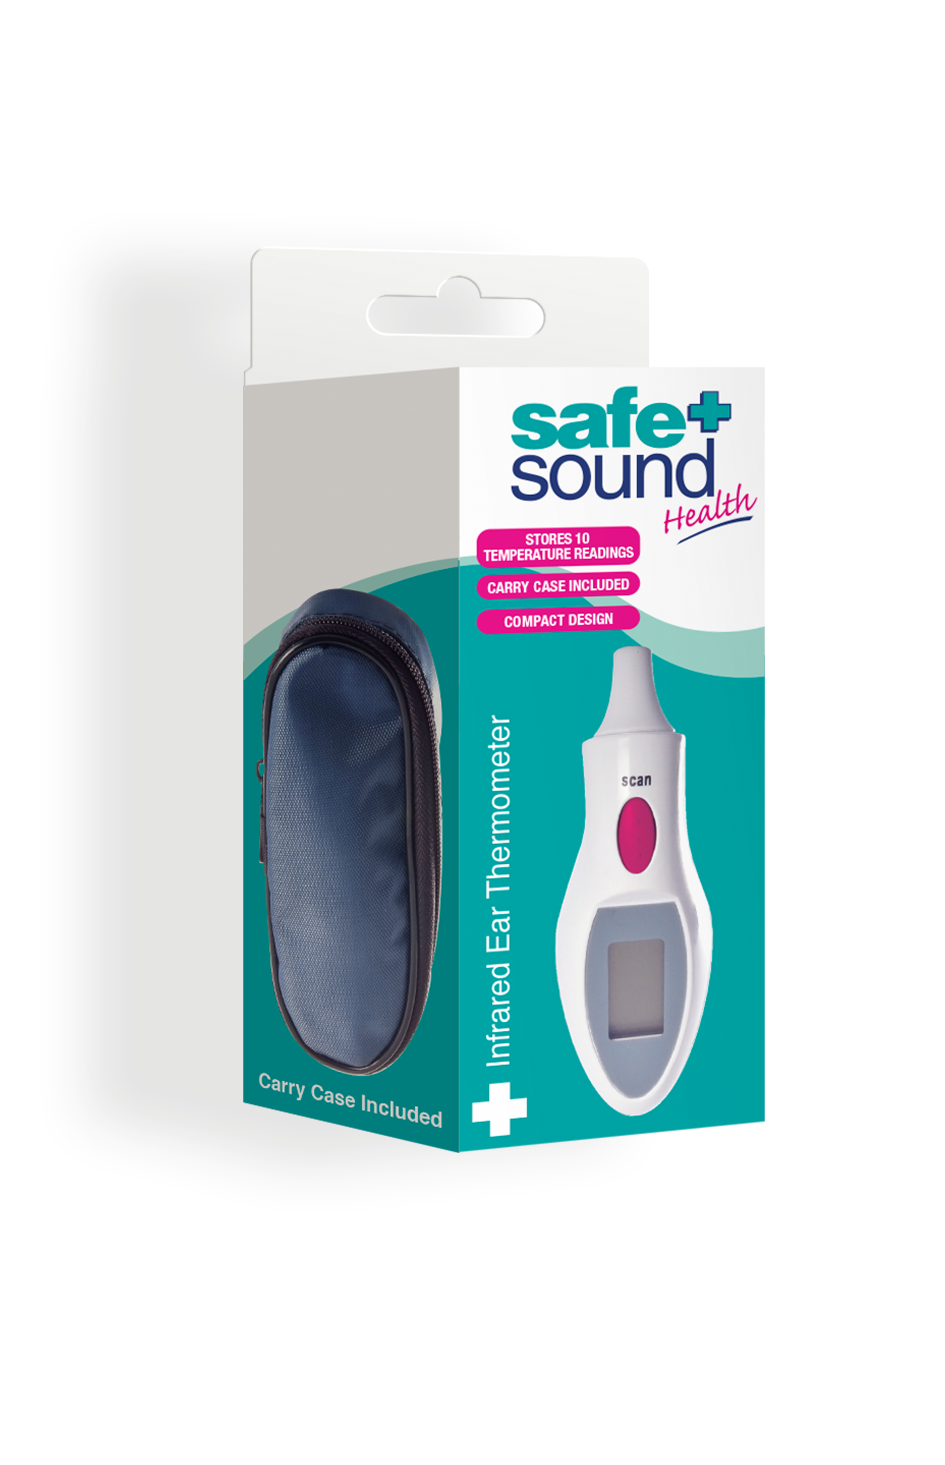 Safe and Sound Health Cover-Free Ear Thermometer